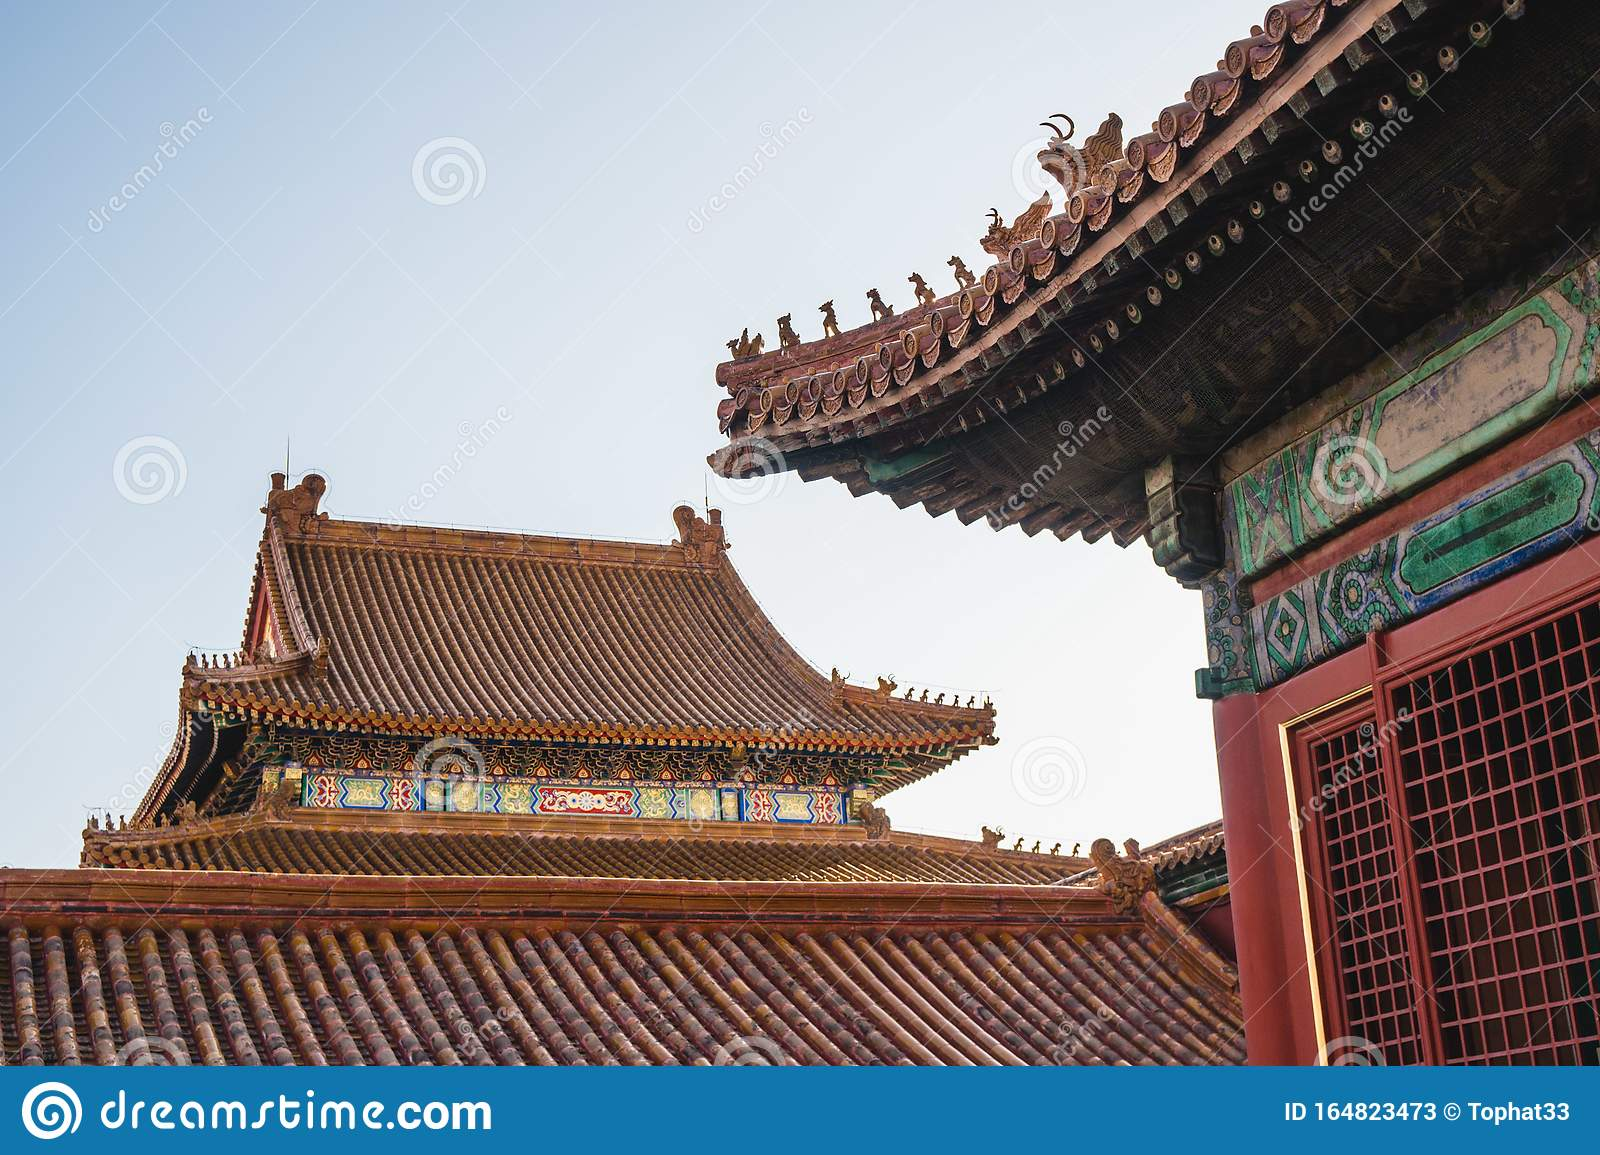 Chinese Traditional Architecture Chinese Roof Top Design In Beijing Stock Image Image Of Ceiling Buddhist 164823473